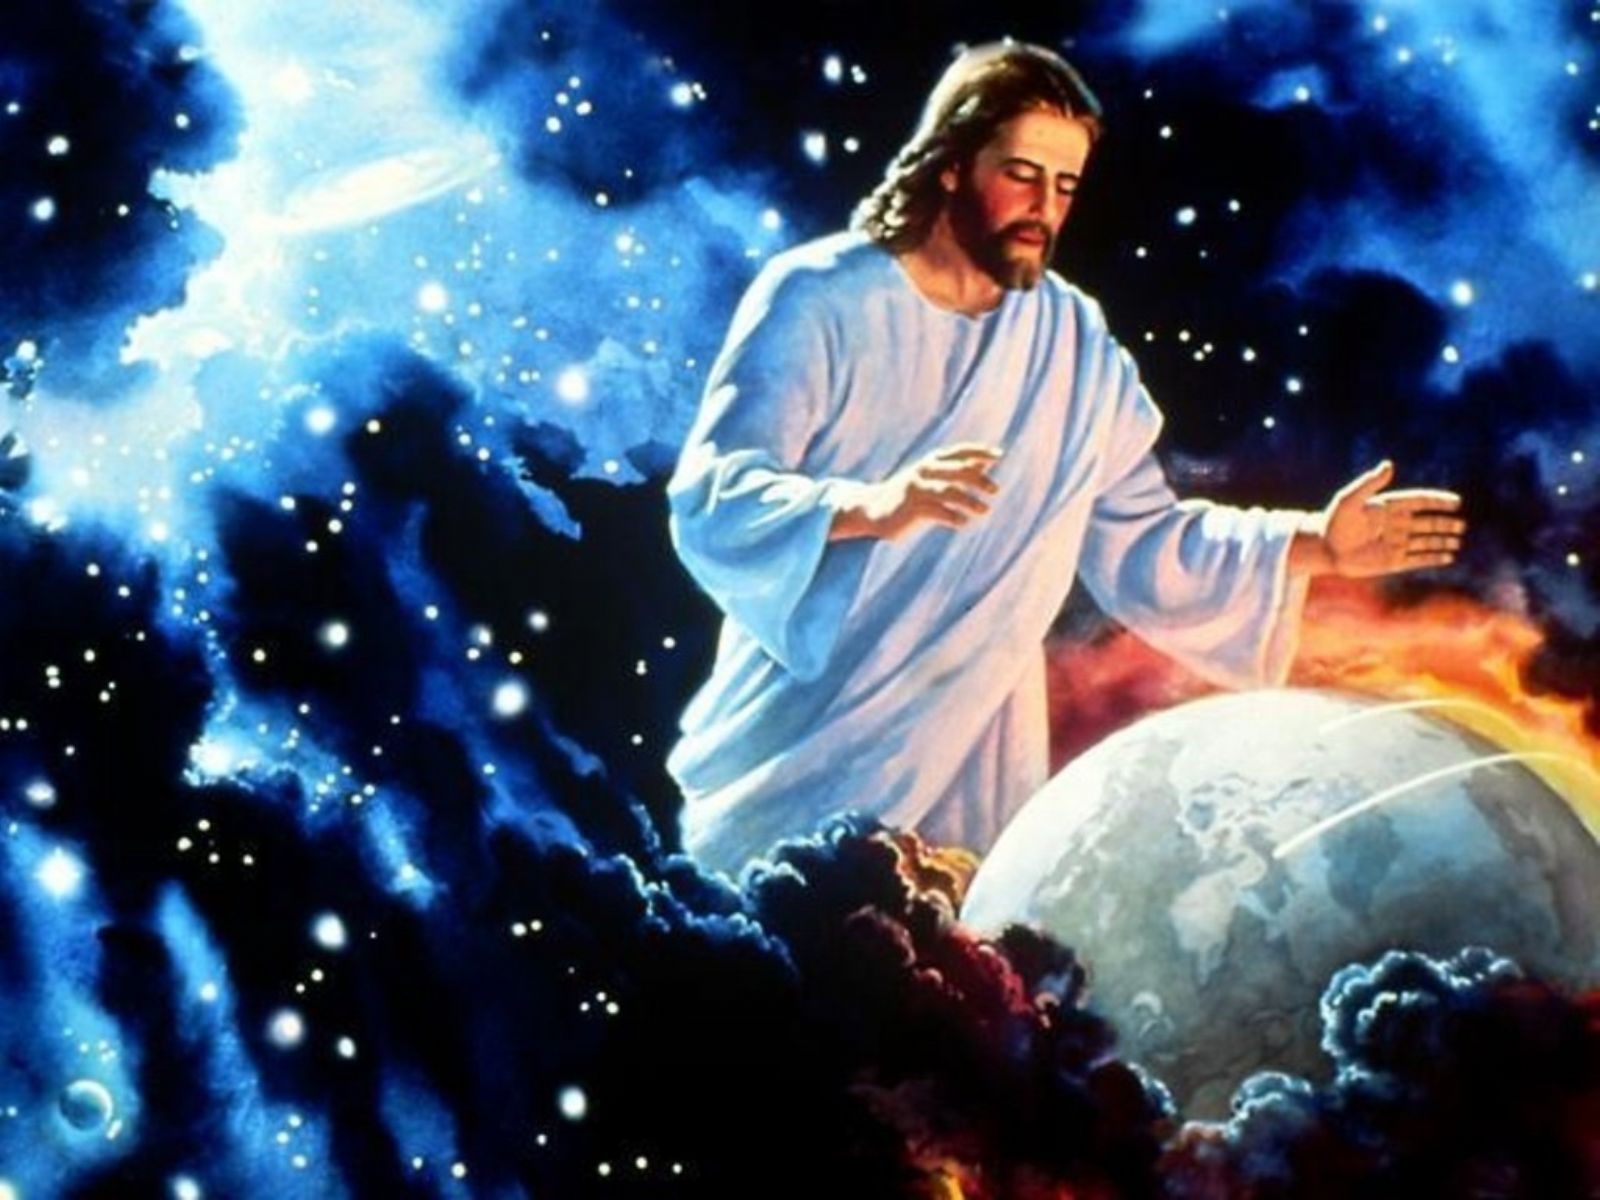 http://3.bp.blogspot.com/-1RG6tQPF4ps/Tds7n5W1kII/AAAAAAAAABA/aoyTIODMjYE/s1600/God%20Wallpapers%20Jesus%20creation.jpg